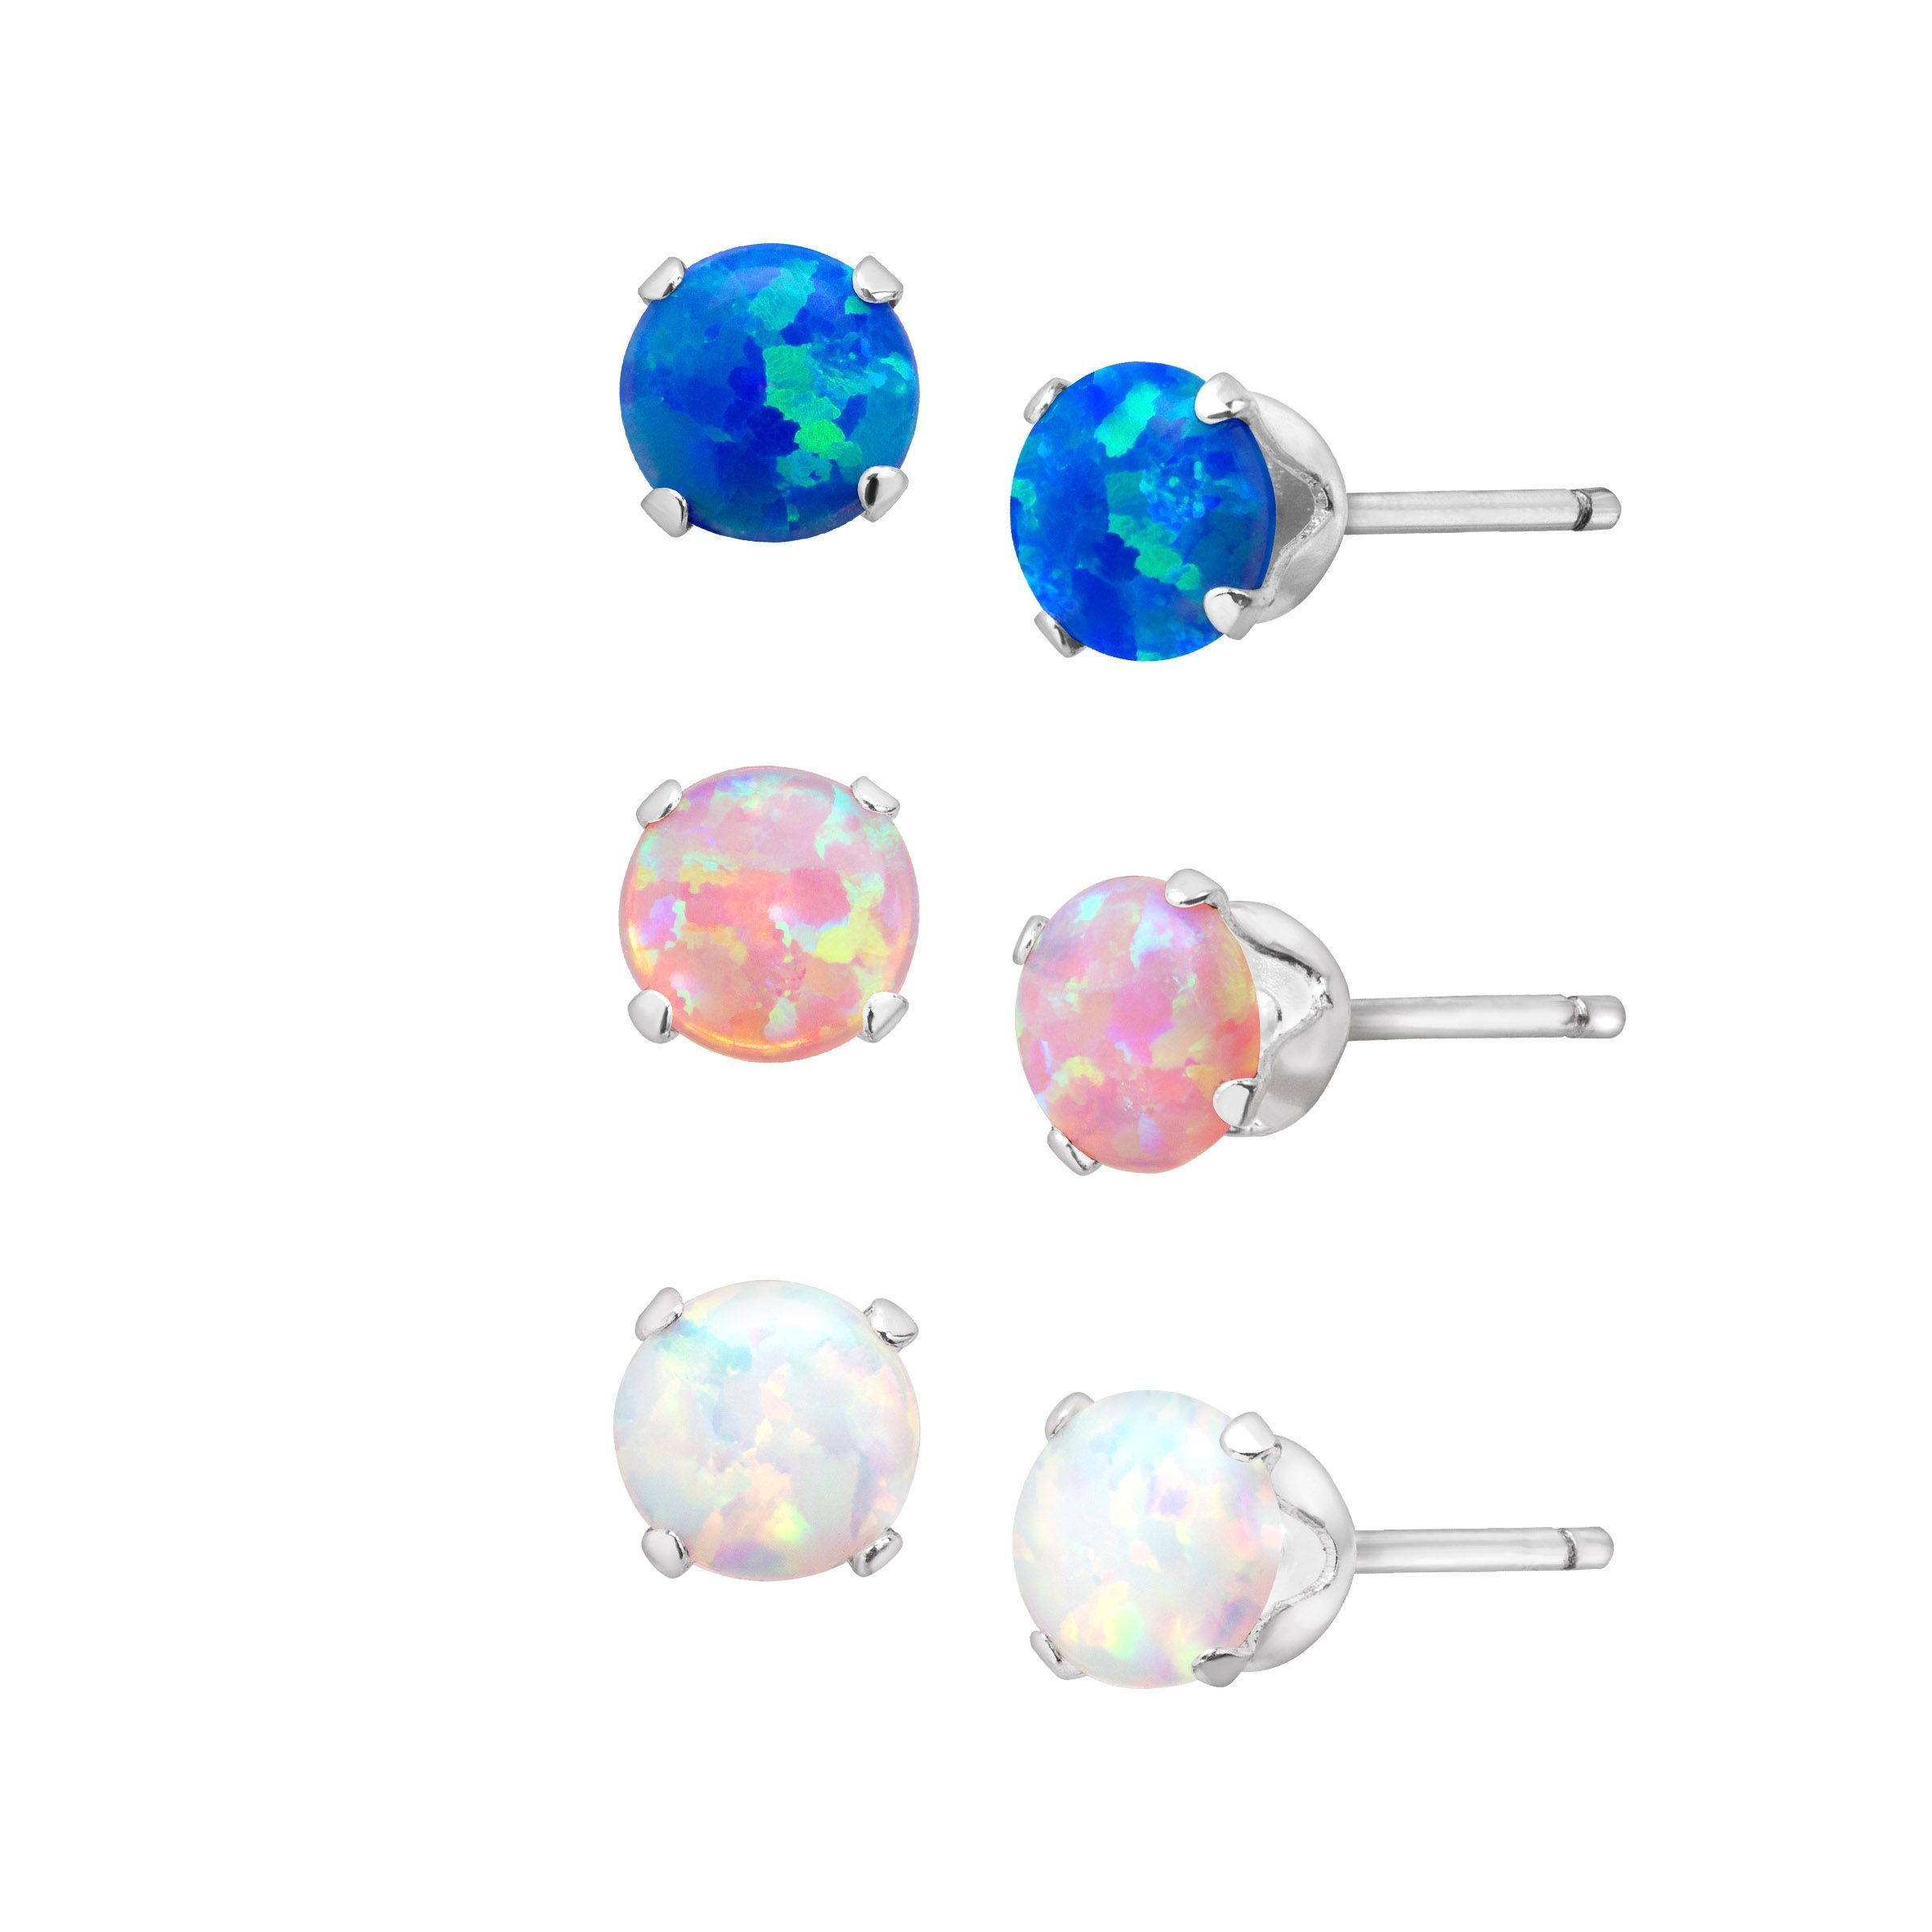 3 4 Ct Tri Color Created Opal Stud Earrings Set Rhodium Plated Sterling Silver